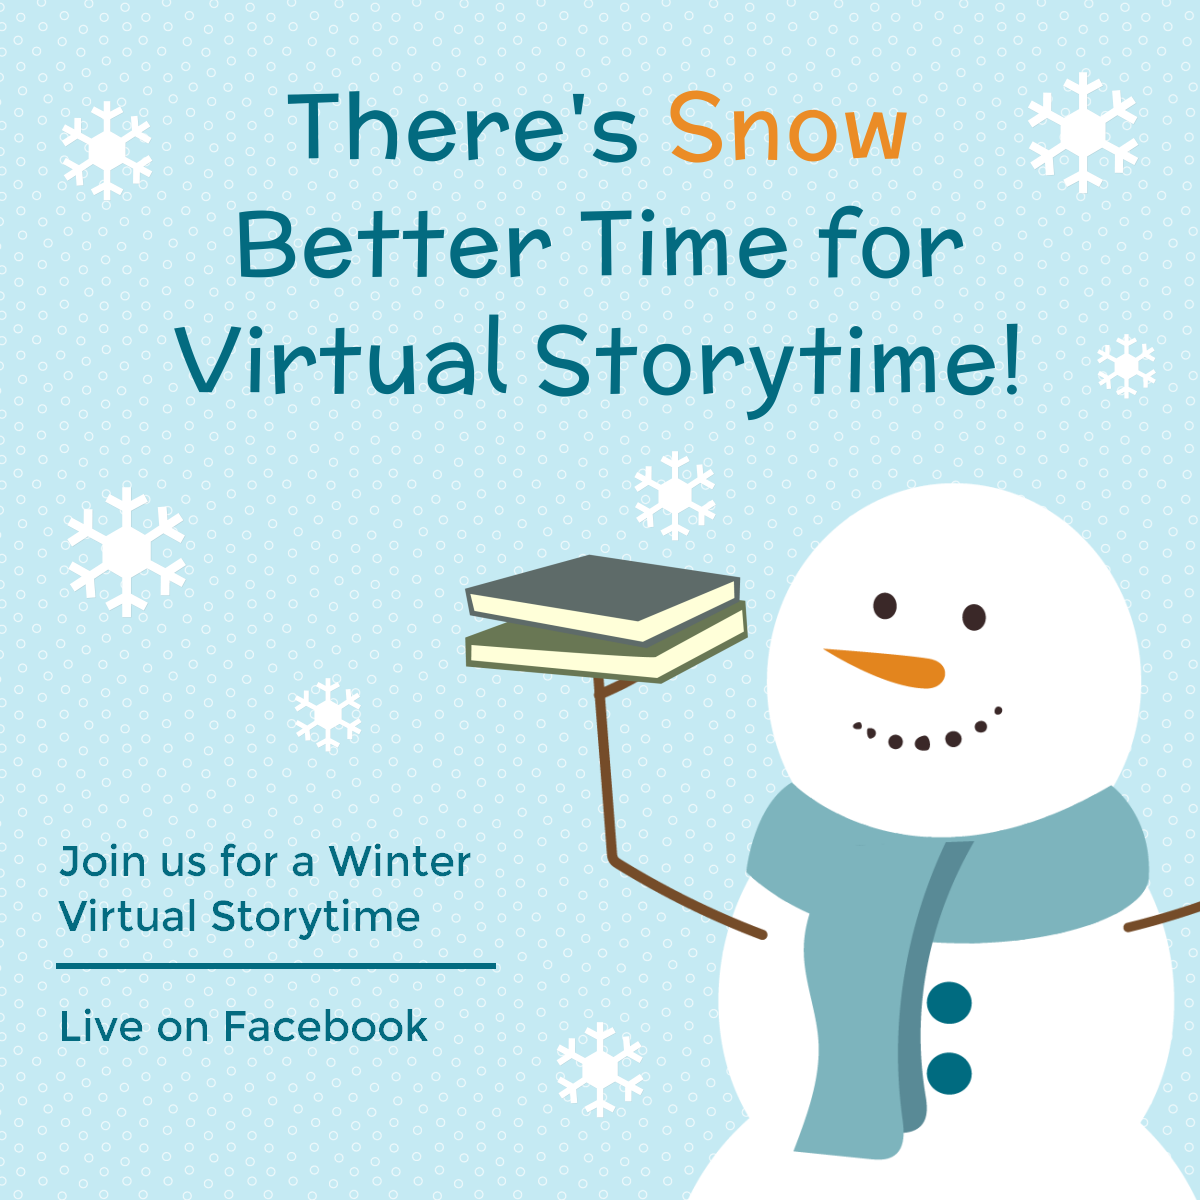 Join us for Winter Online Storytimes